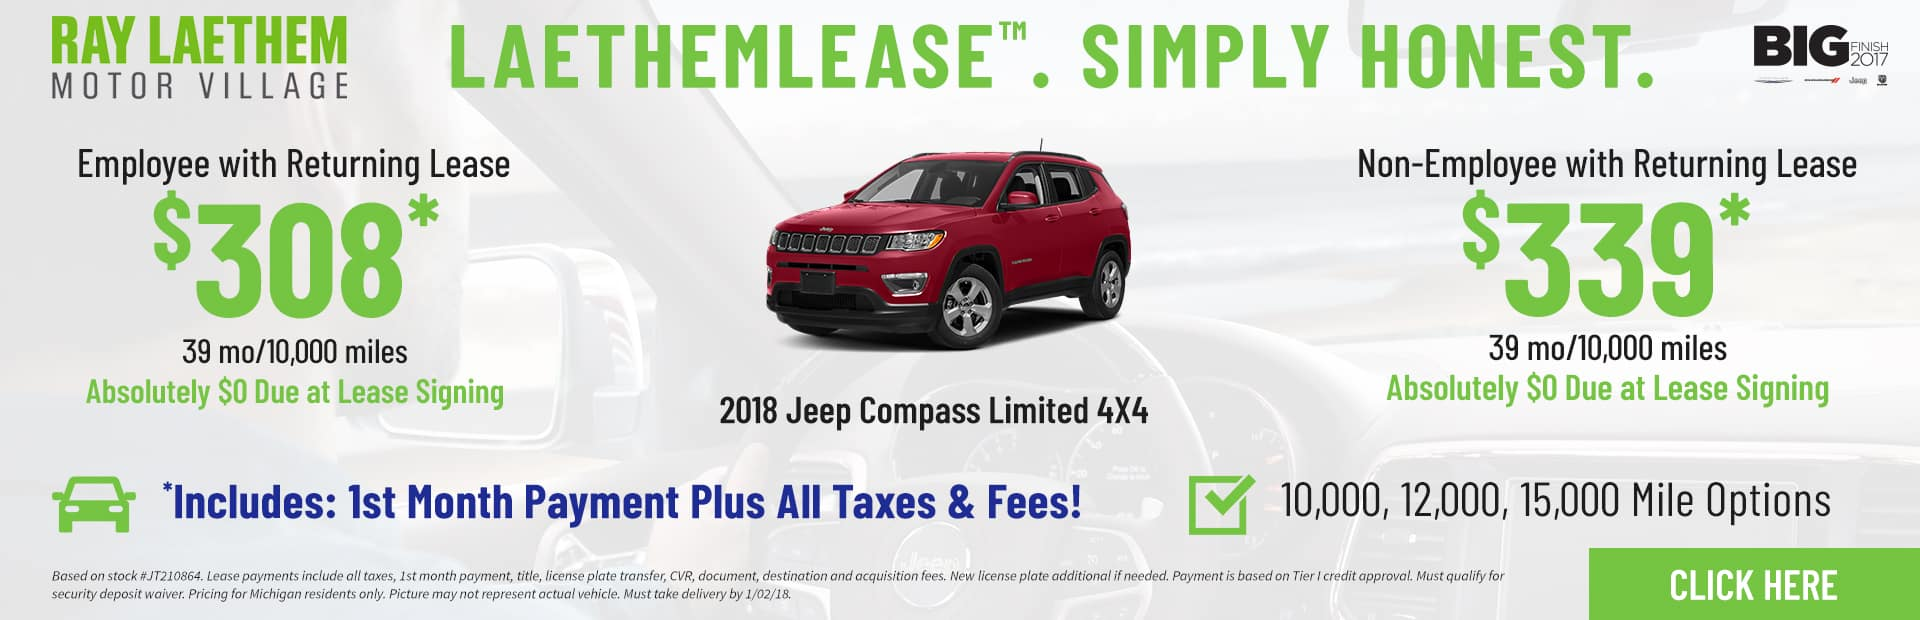 Compass Limited LaethemLease